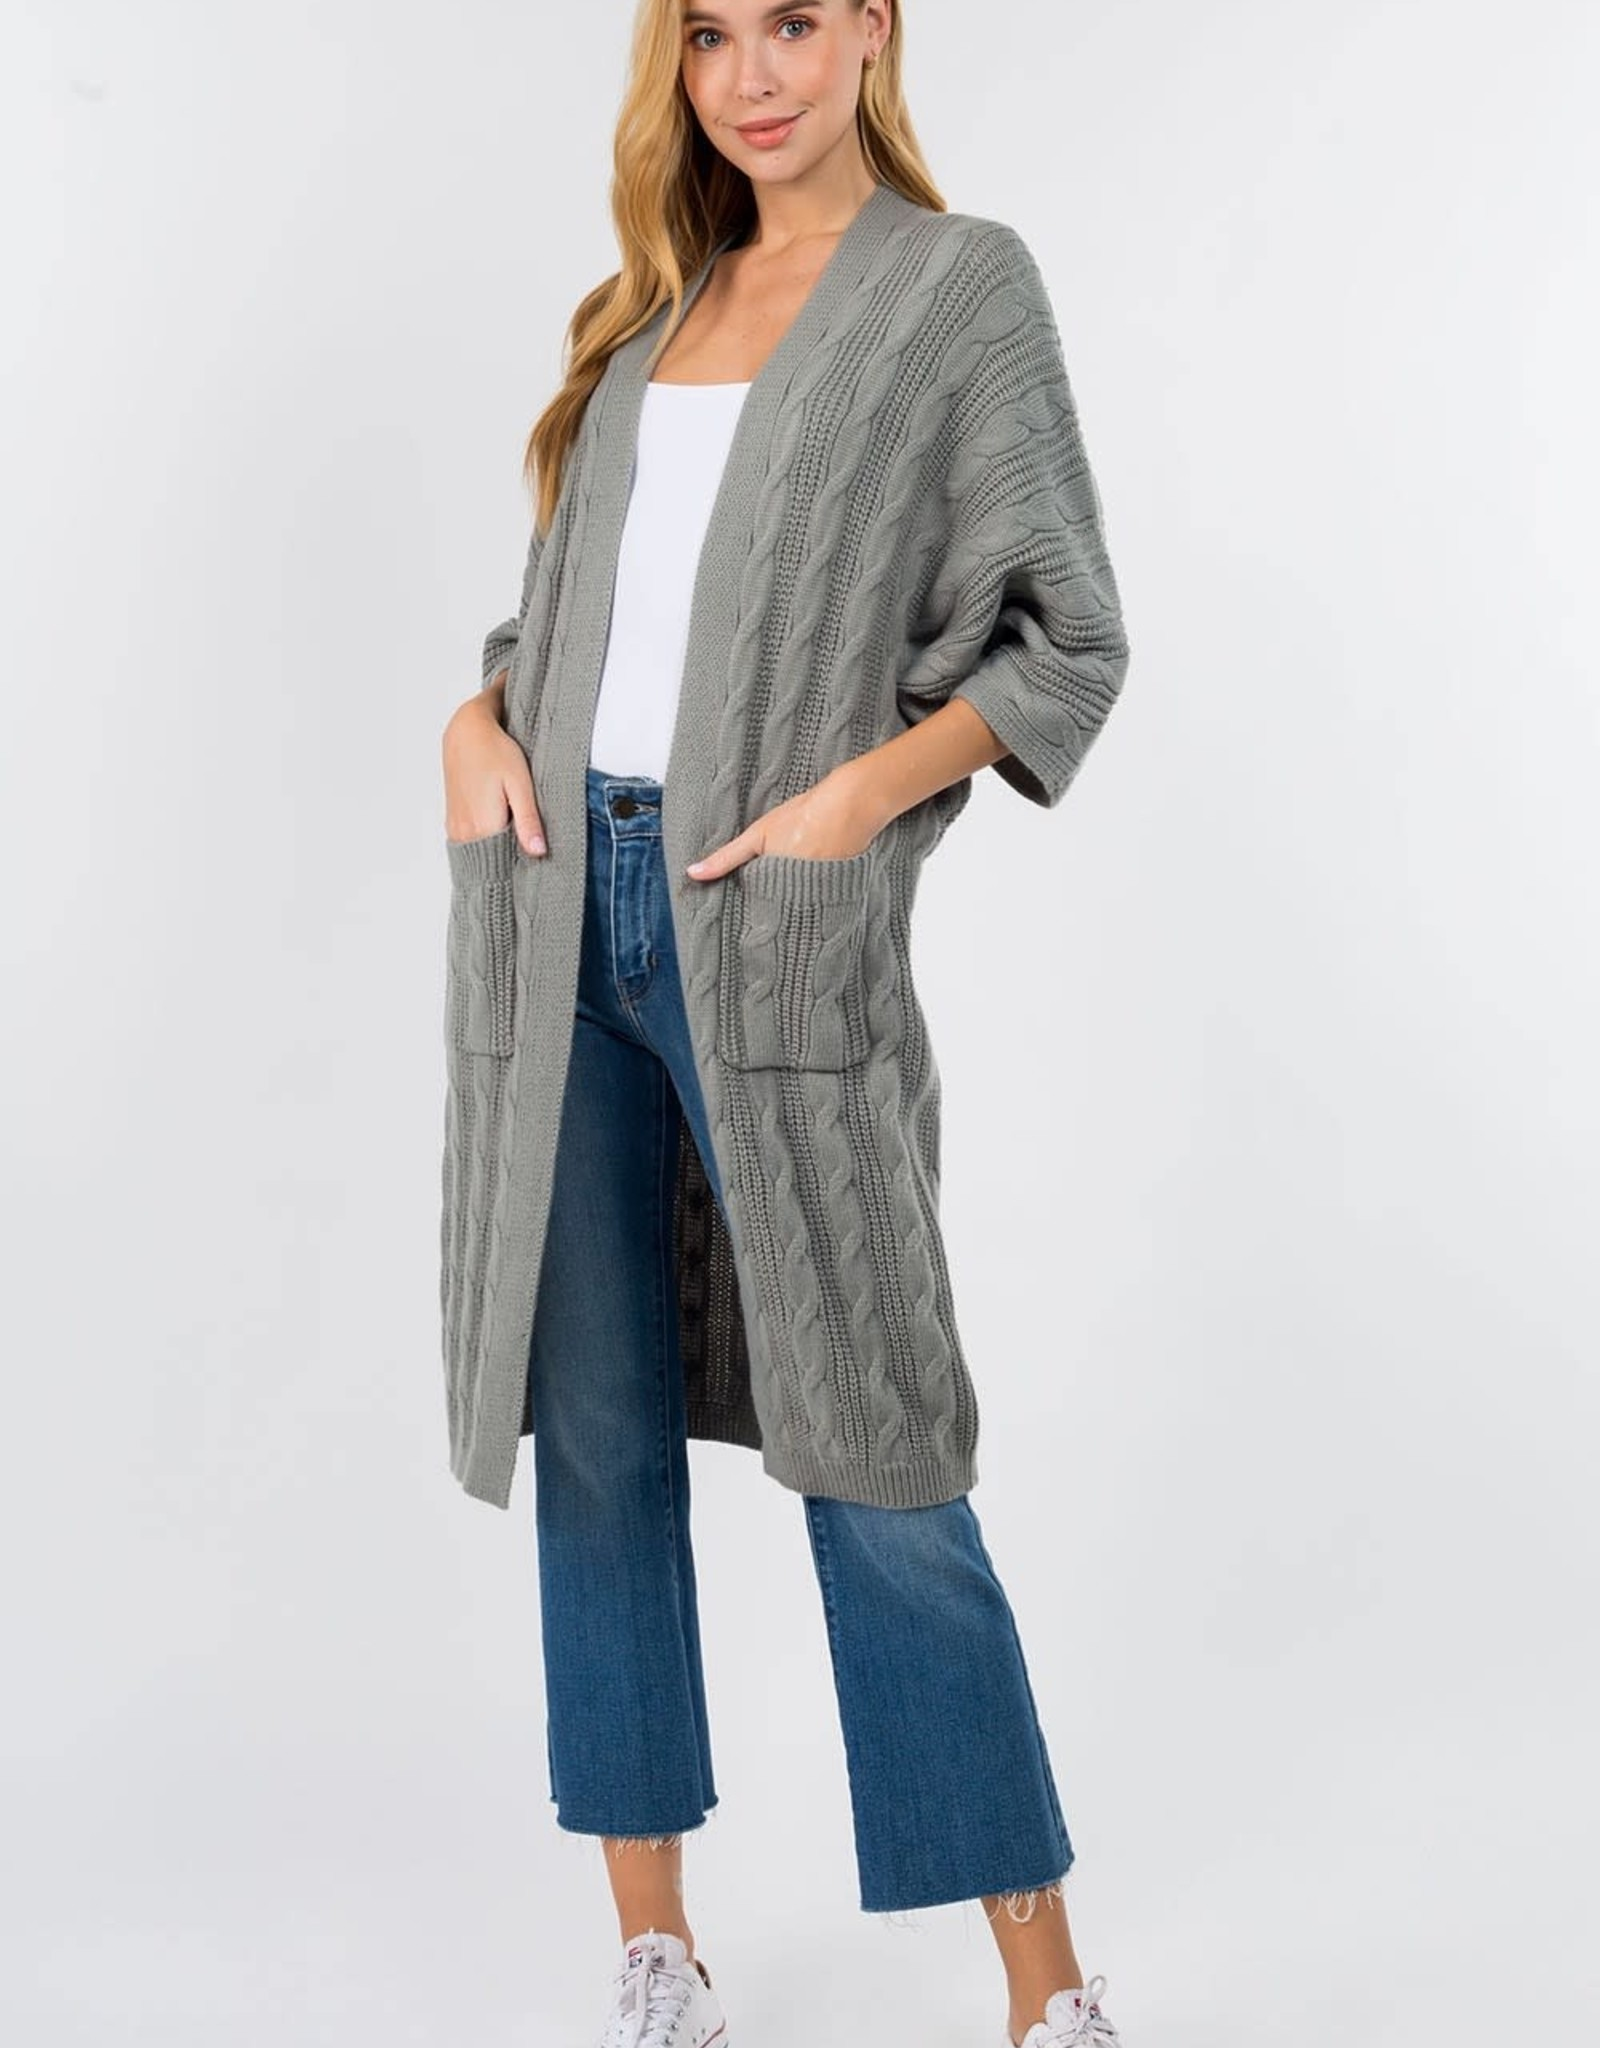 Miss Bliss Textured Long Line Cardigan- Sage